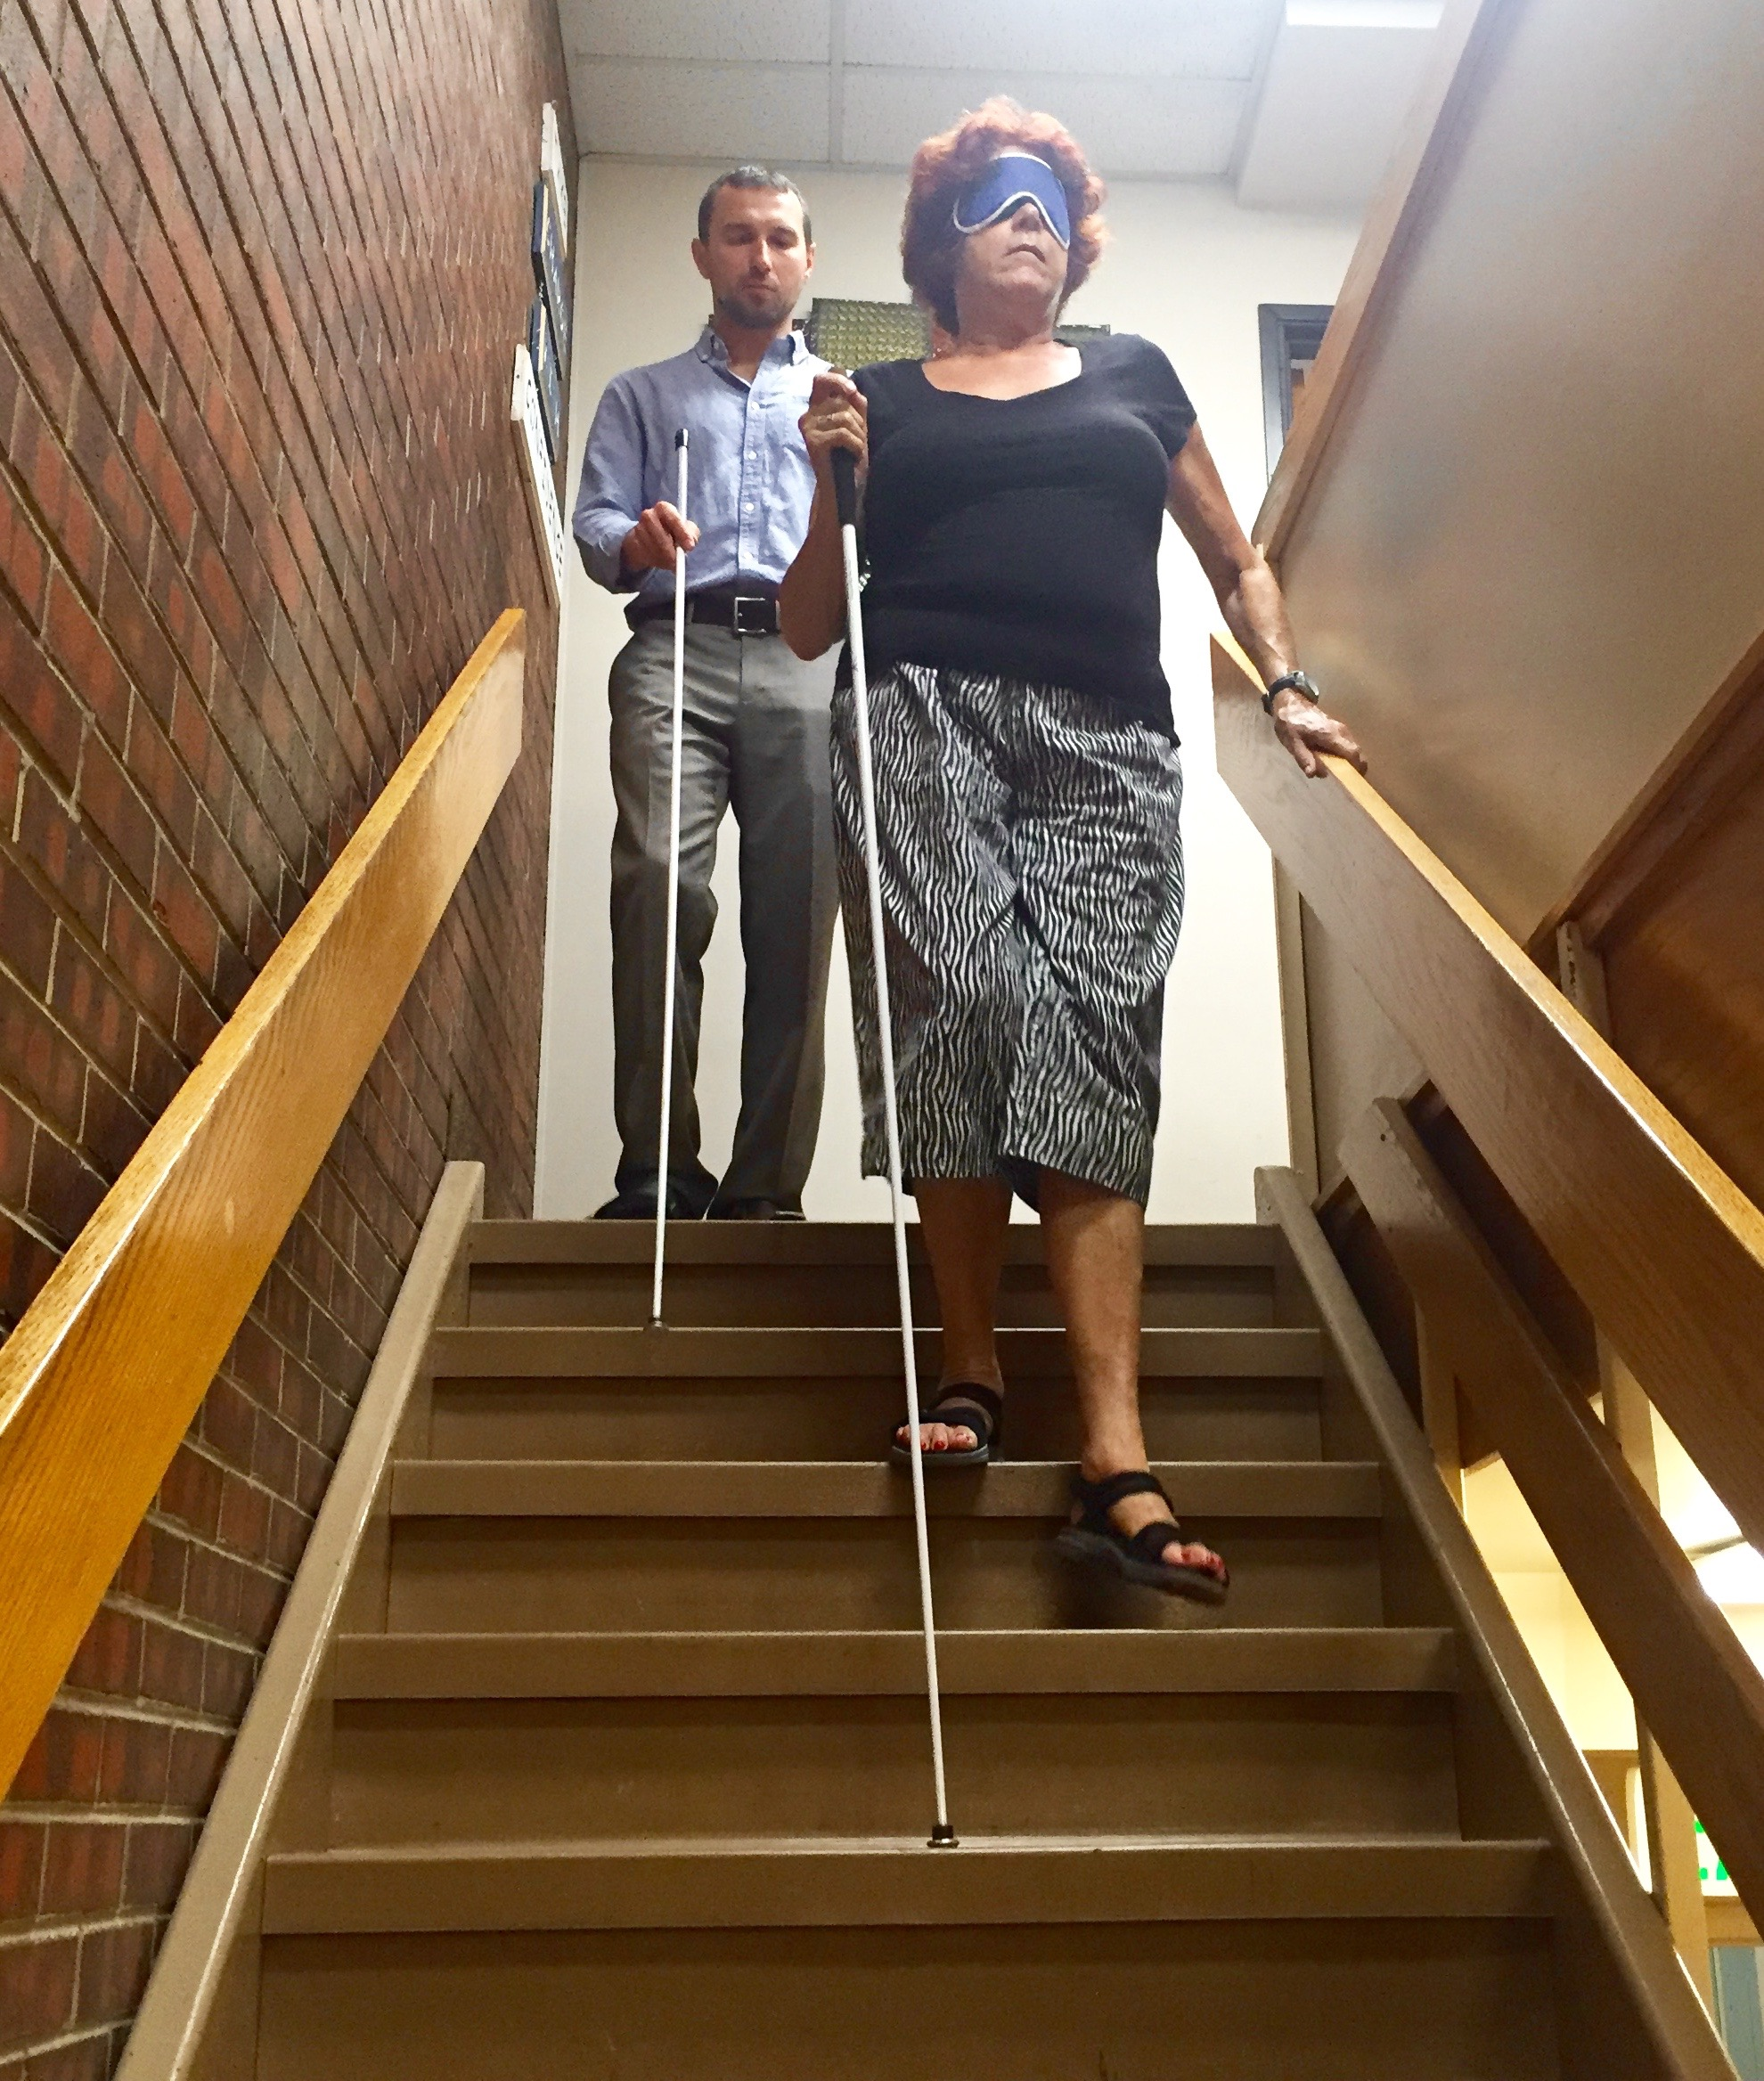 A young man gives a senior woman a cane lesson on the stairs